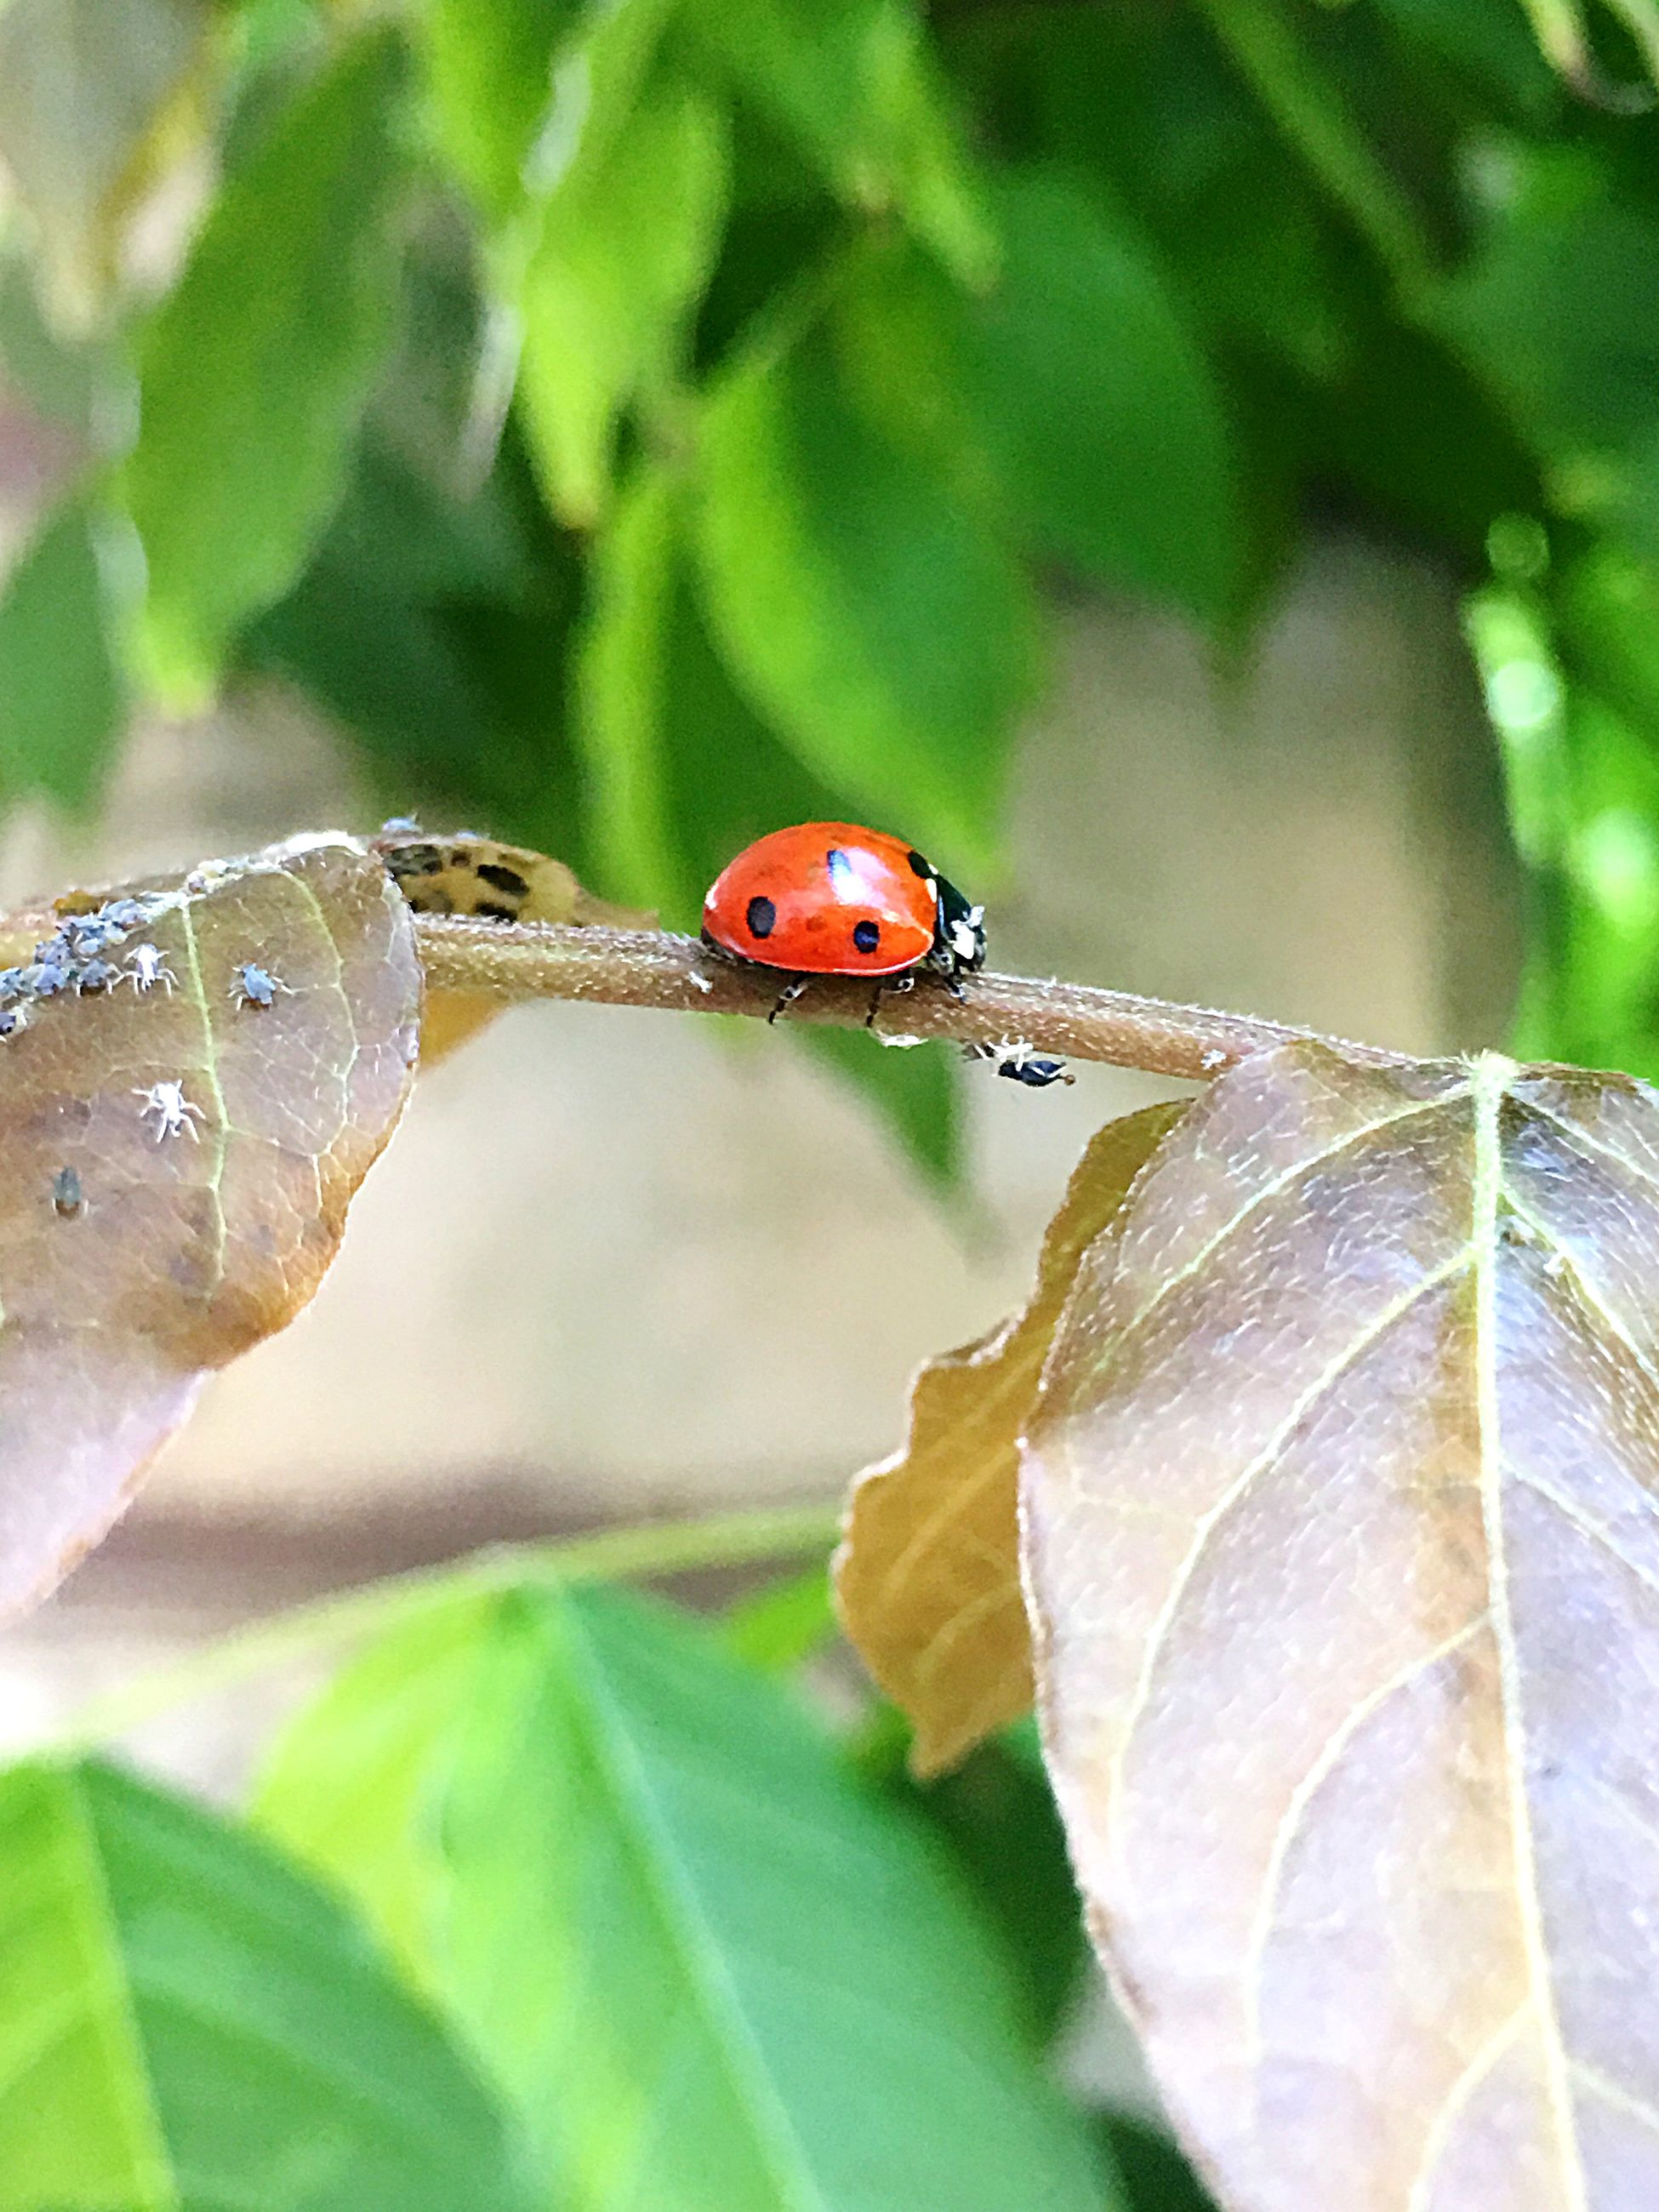 invertebrate, plant part, leaf, insect, animals in the wild, animal wildlife, animal, close-up, animal themes, ladybug, beetle, plant, nature, focus on foreground, one animal, day, green color, no people, outdoors, red, small